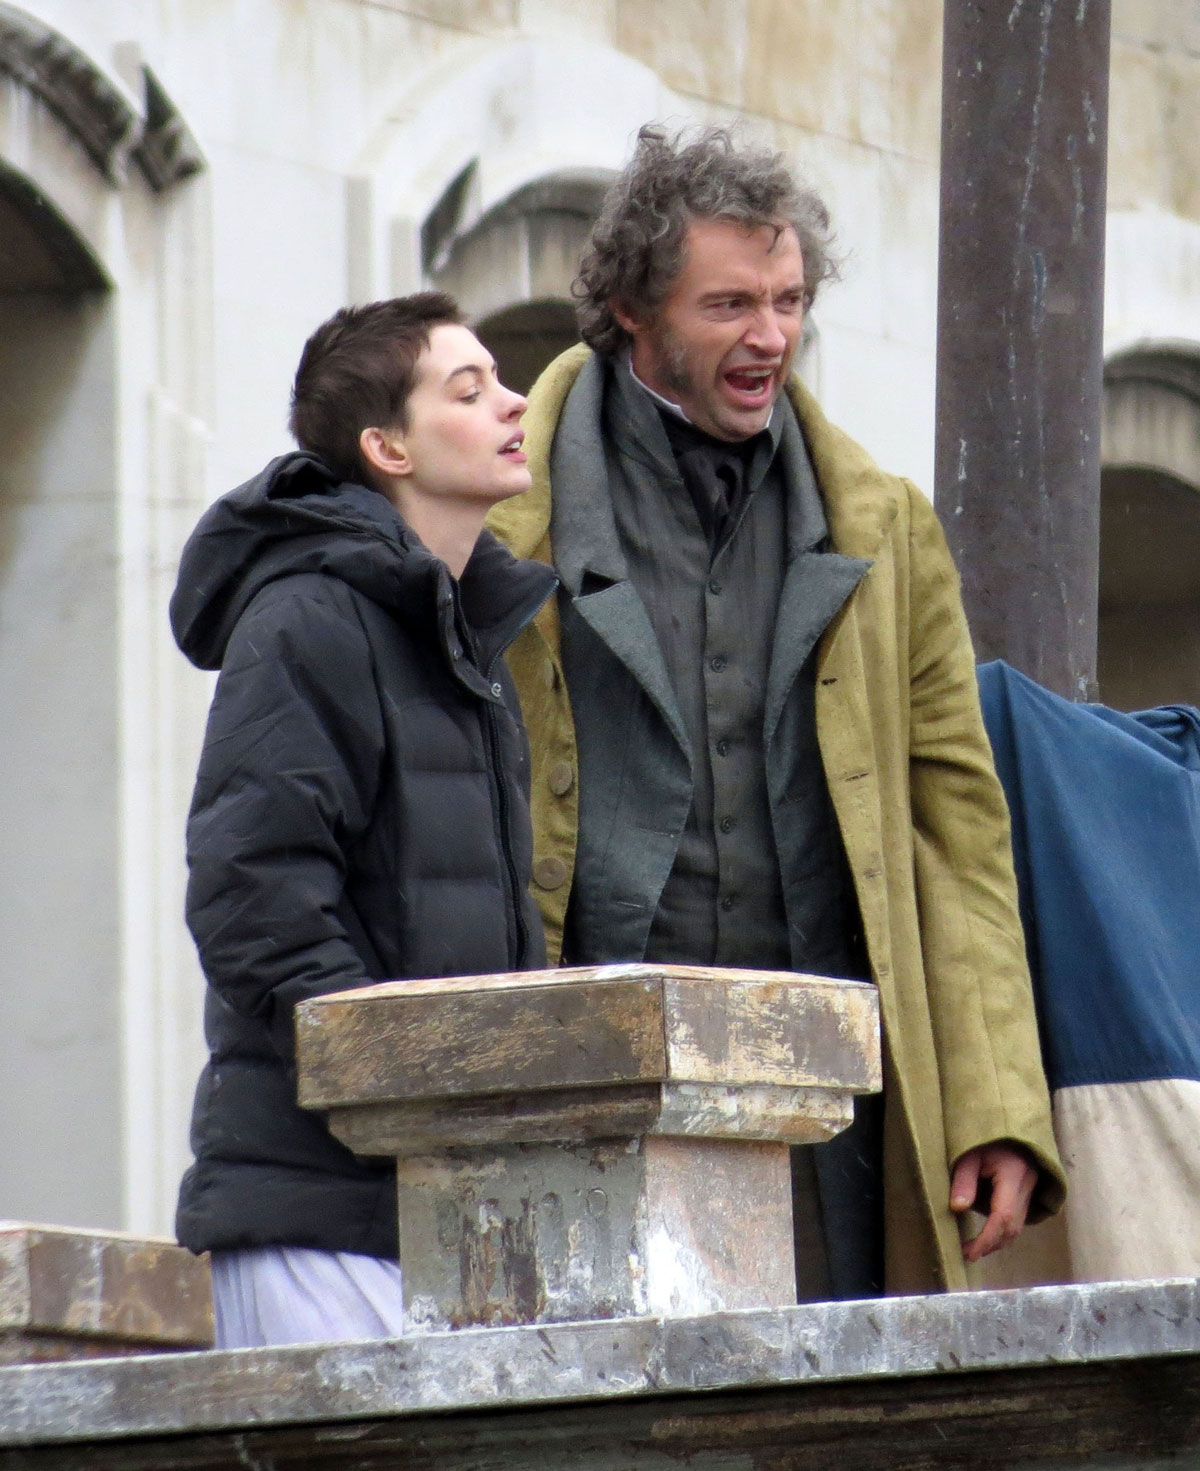 ANNE HATHAWAY On The Set Of Les Misérables In London